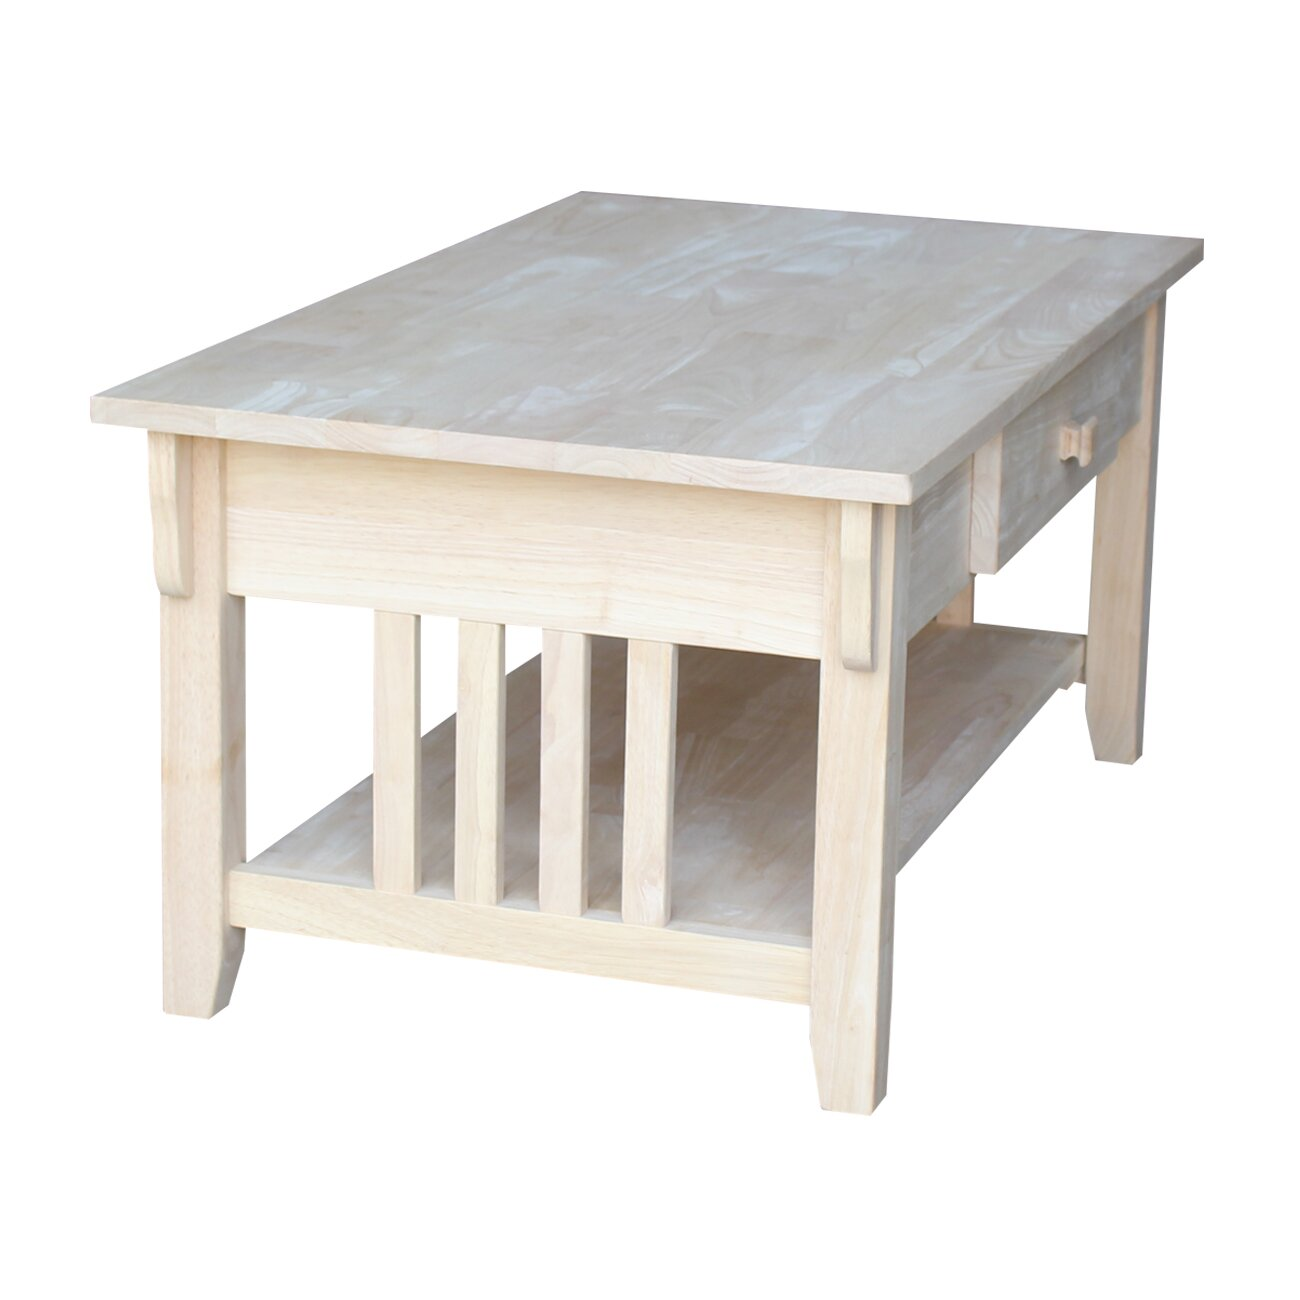 Unfinished Wood Coffee Table - International Concepts Unfinished Wood Coffee Table & Reviews